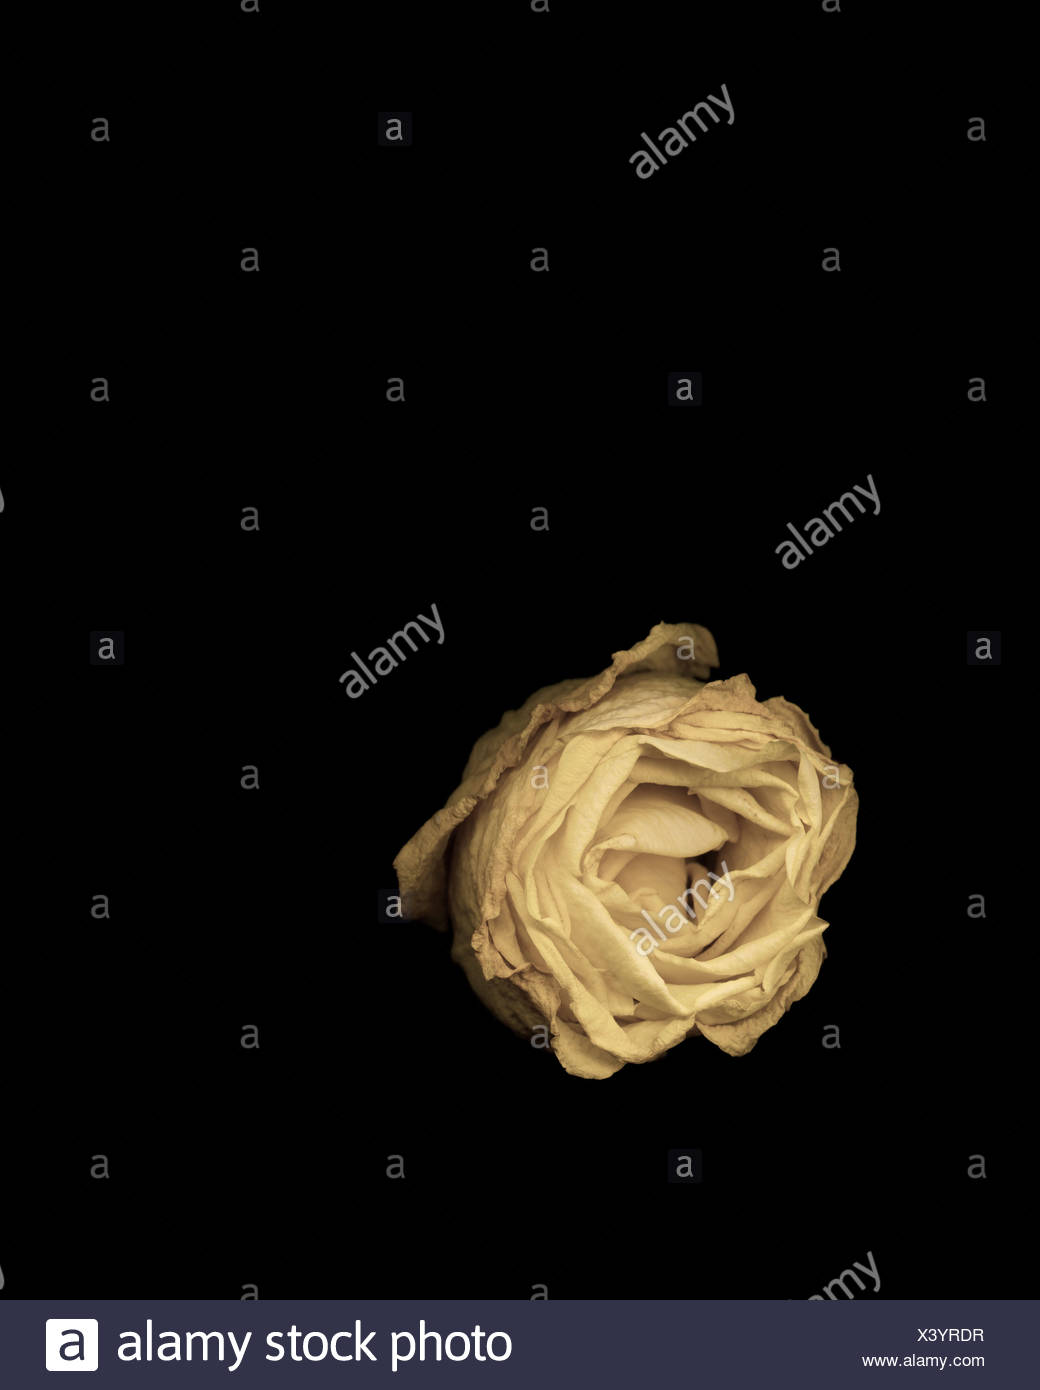 Studio shot of wilting rose - Stock Image